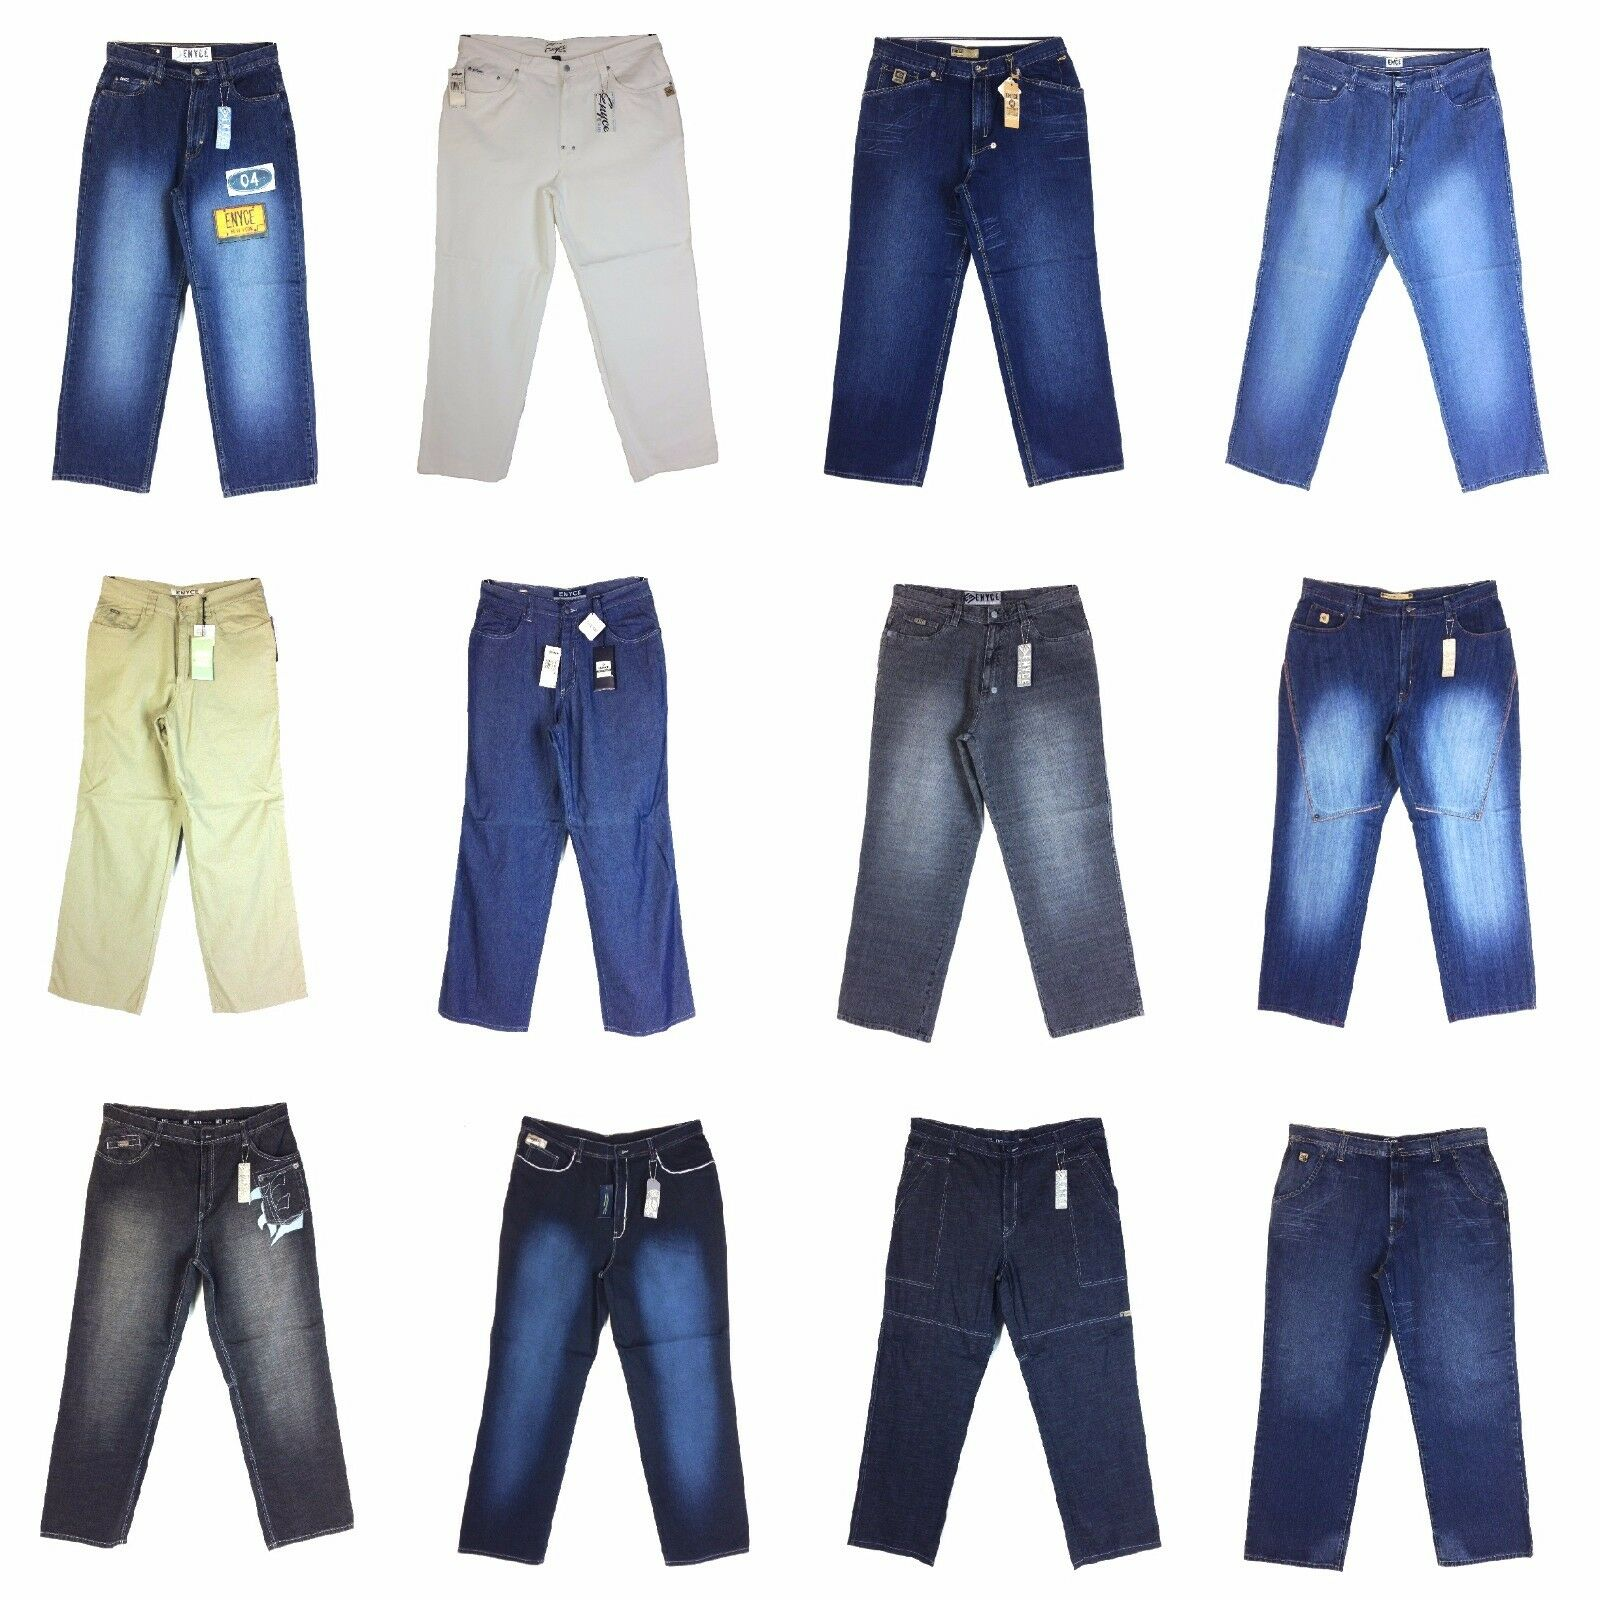 ENYCE MEN'S DESIGNER NEW JEAN ASSORTED STYLES GROUP (2),